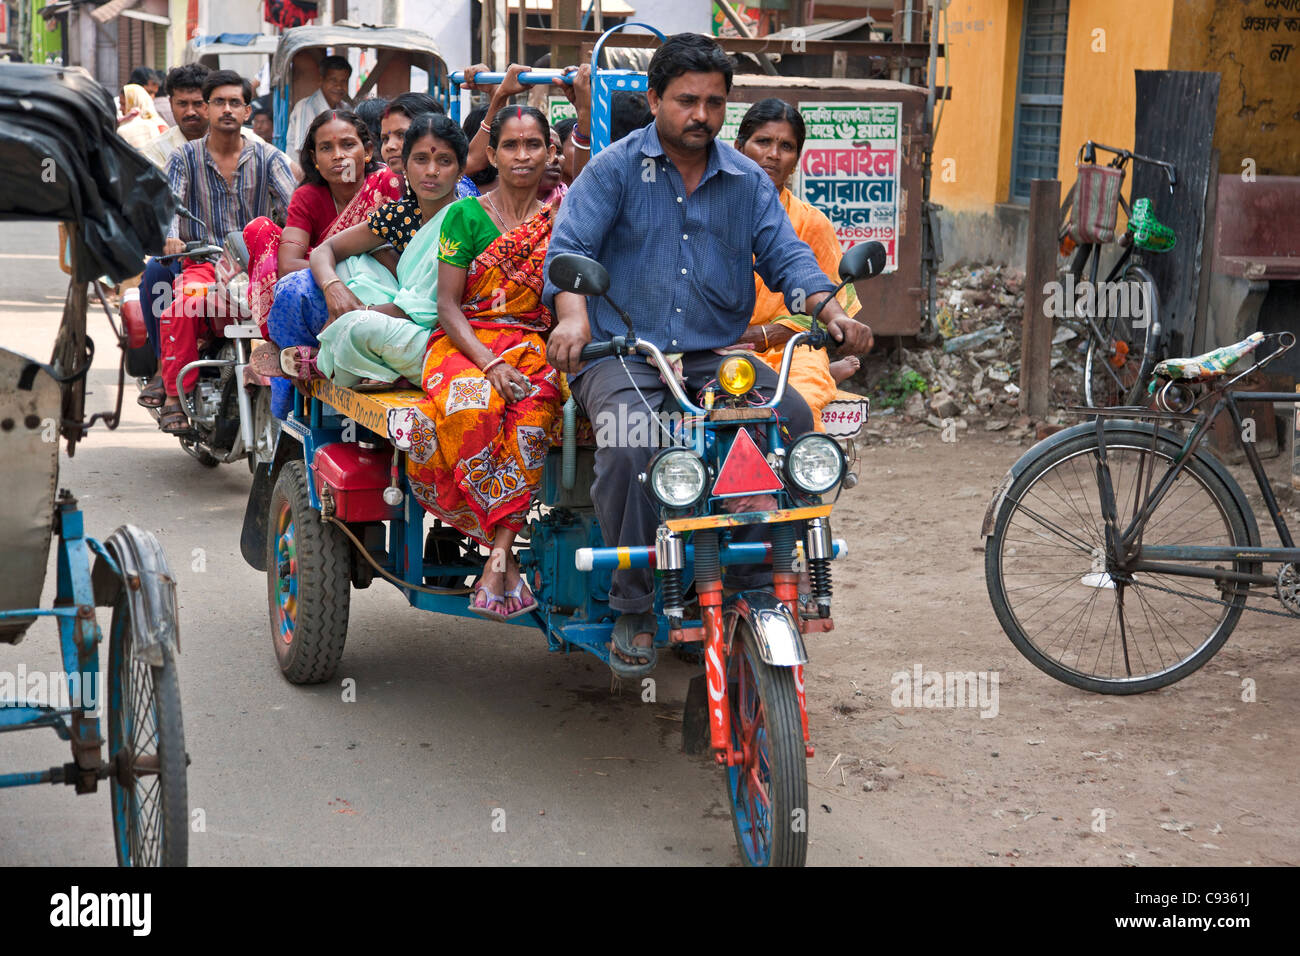 Crowded transport negotiates the narrow streets in Kalna. - Stock Image